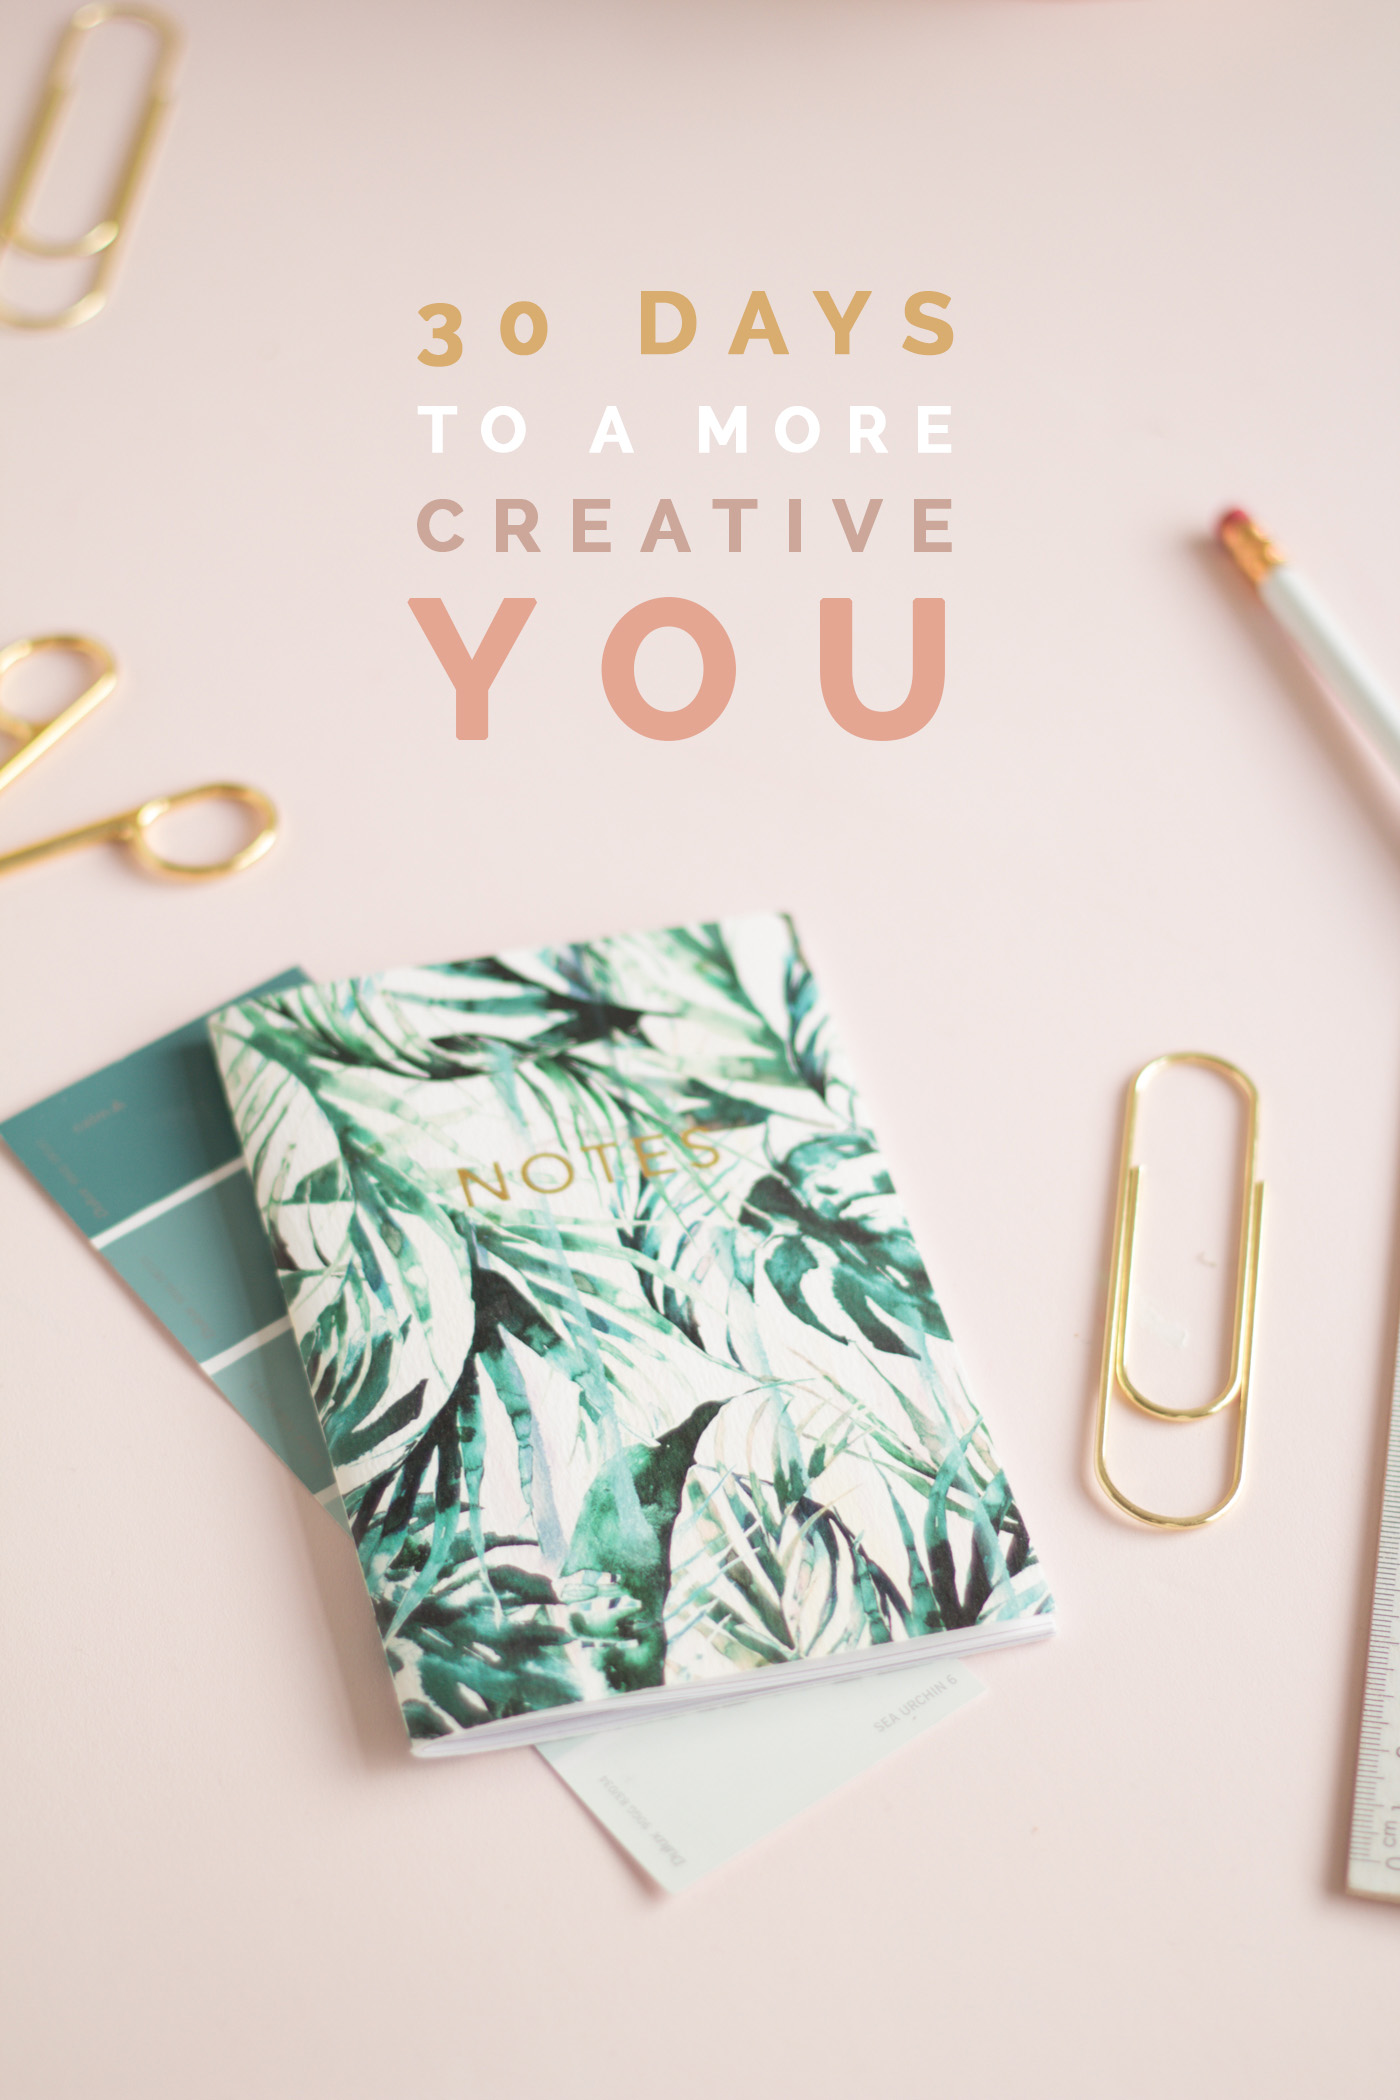 30 Days to a more Creative You Challenge